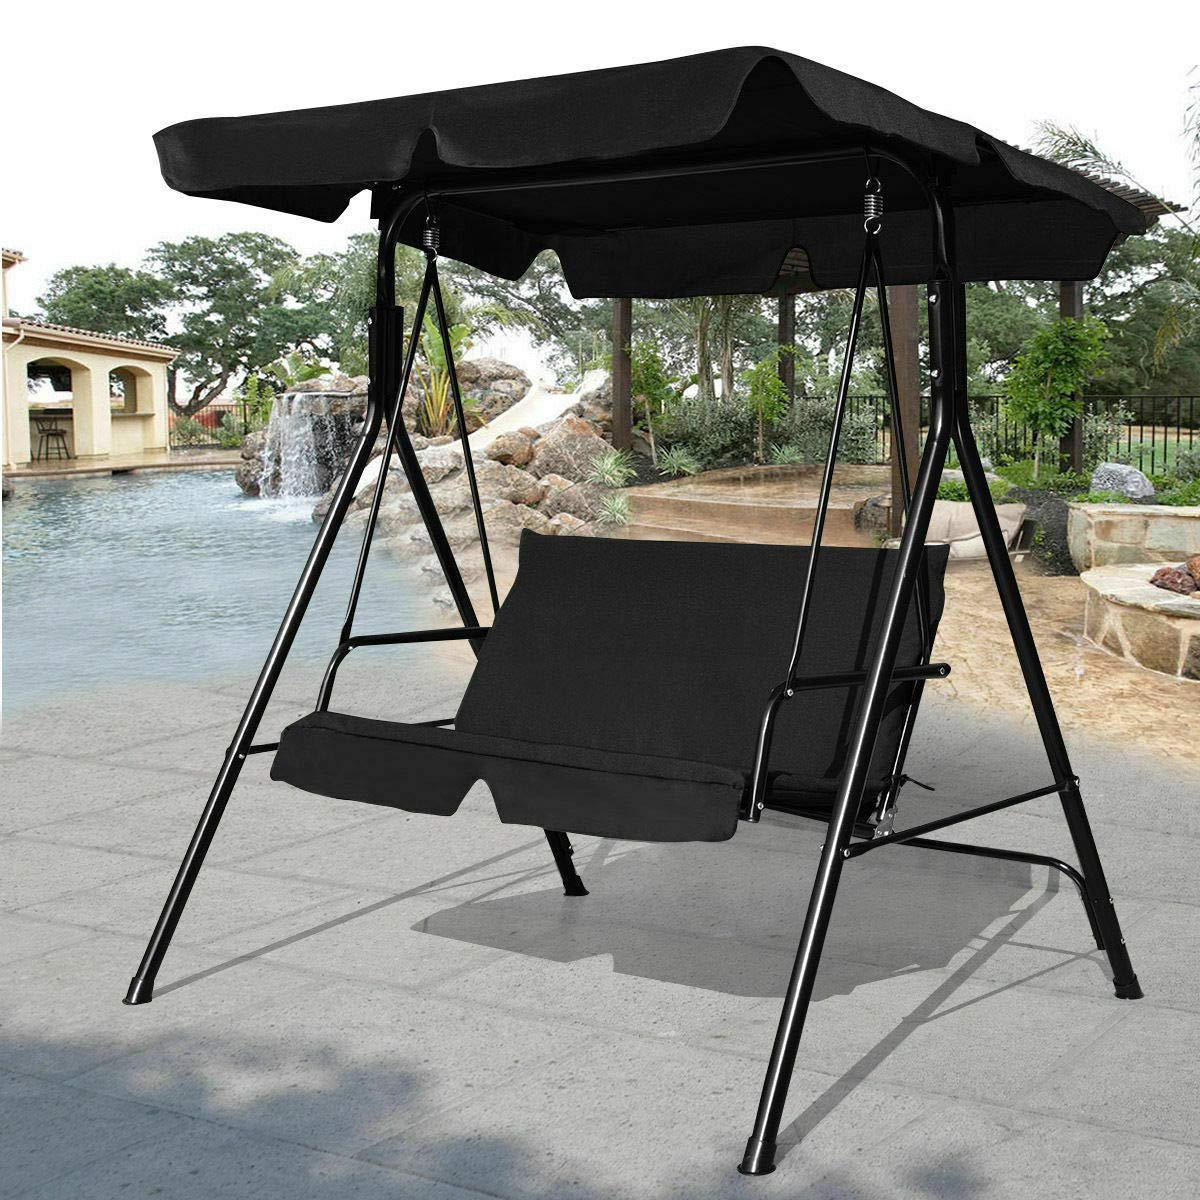 3 Seats Patio Canopy Swing Gliders Hammock Cushioned Steel Frame For Well Known Amazon : Lovelabel Black Patio 3 Seats Canopy Swing (Gallery 2 of 30)